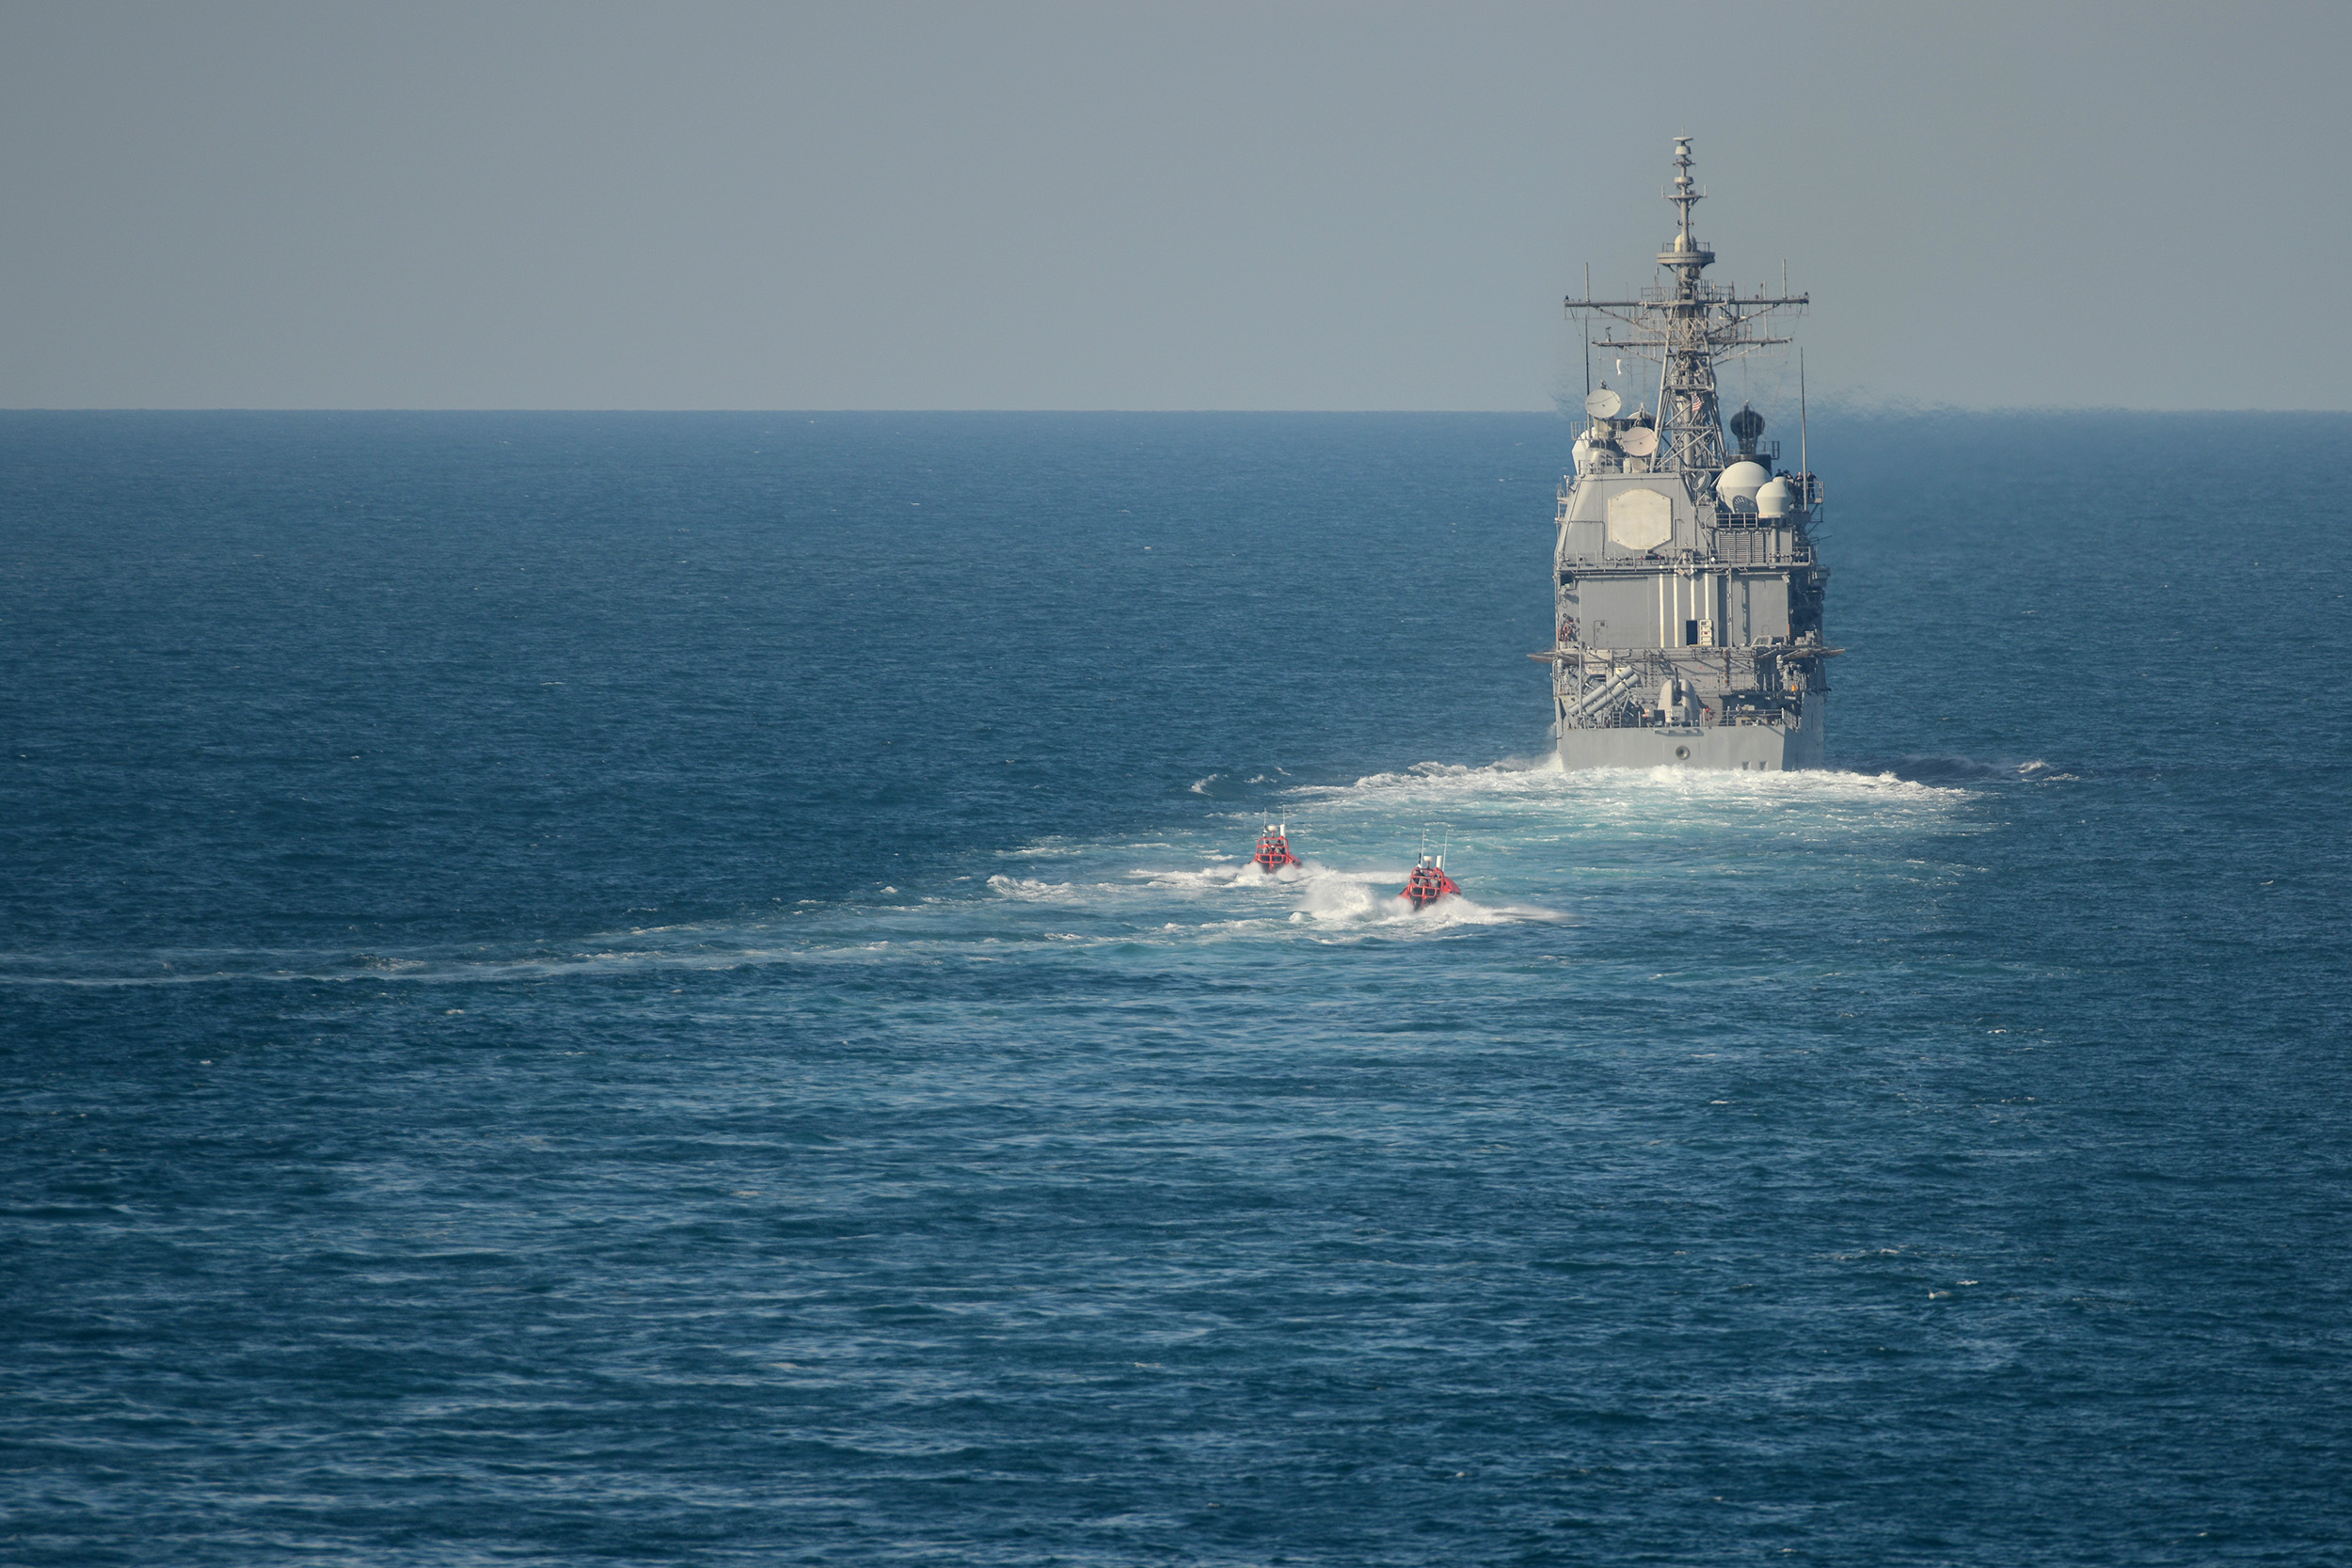 Two fast inbound attack craft approach guided-missile cruiser USS Anzio (CG 68) during a simulated strait transit with the Harry S. Truman Carrier Strike Group. US Navy photo.